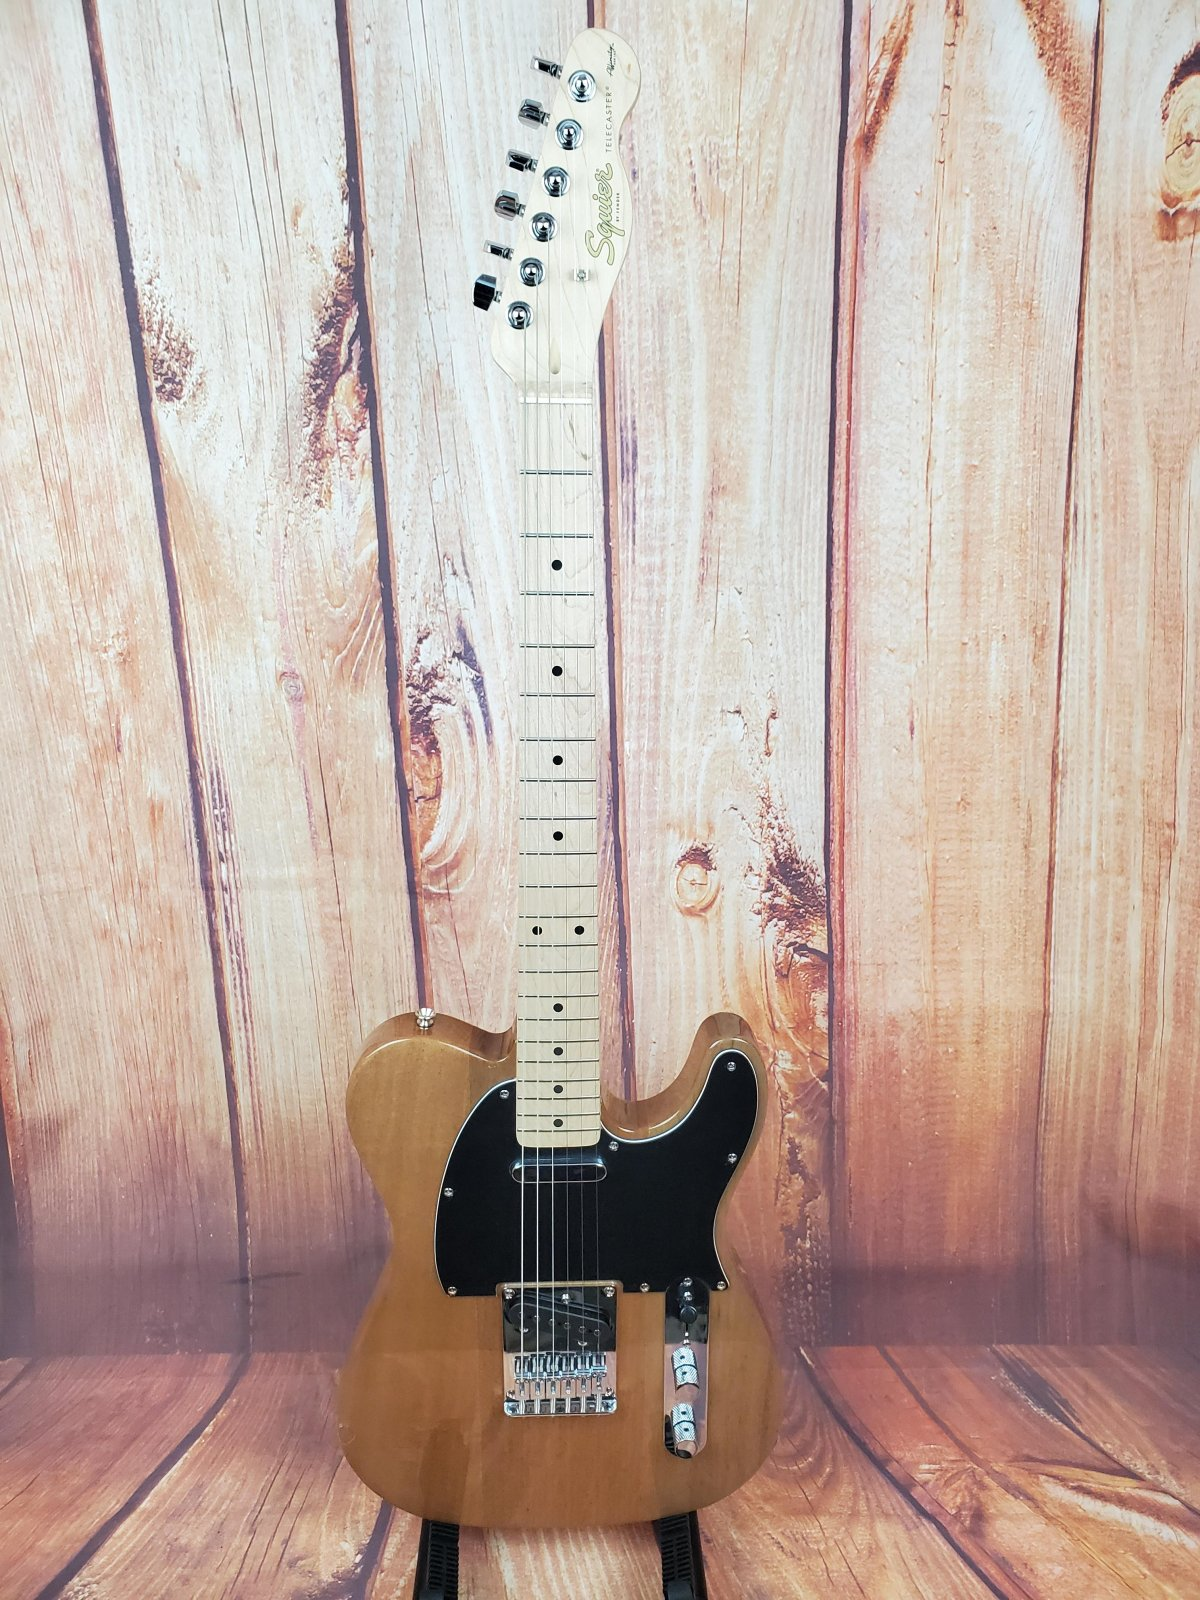 Used-Squier Affinity Series Telecaster